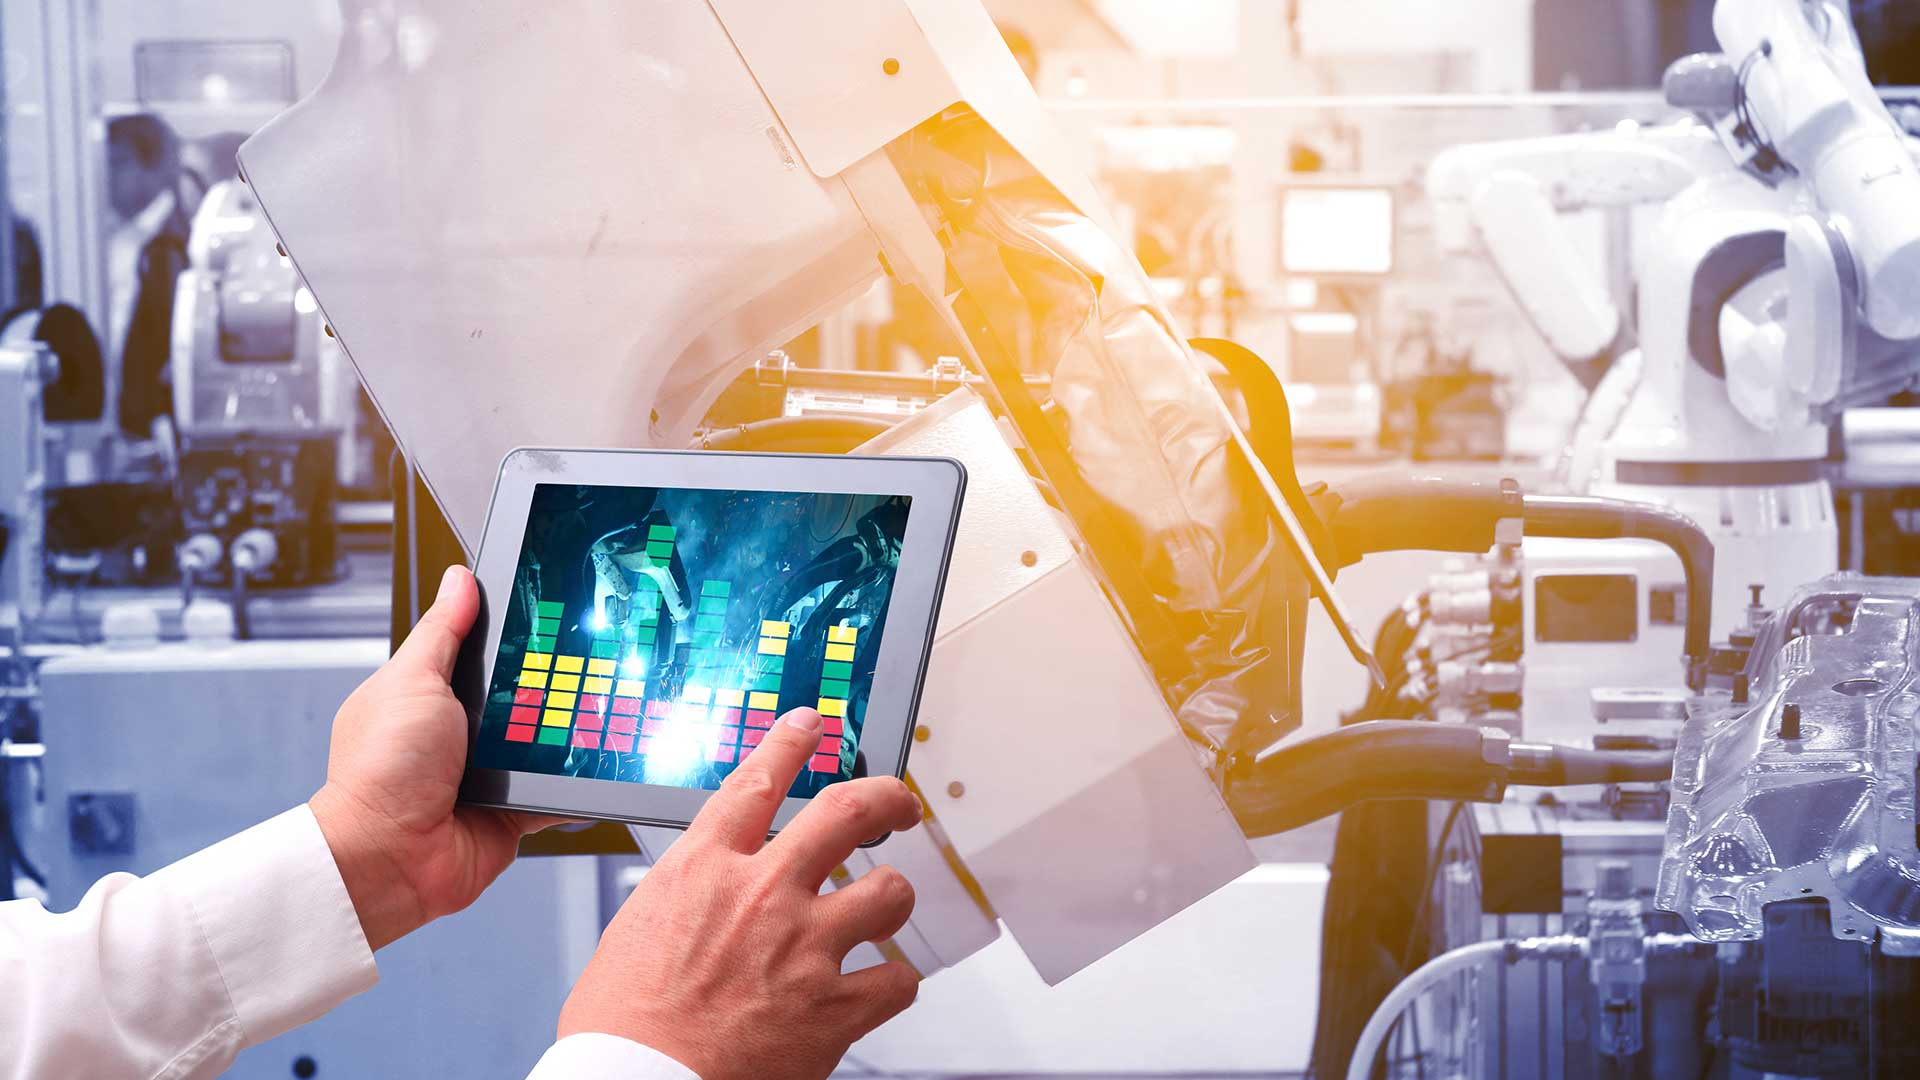 AI and Automation in Manufacturing and Industry 4.0